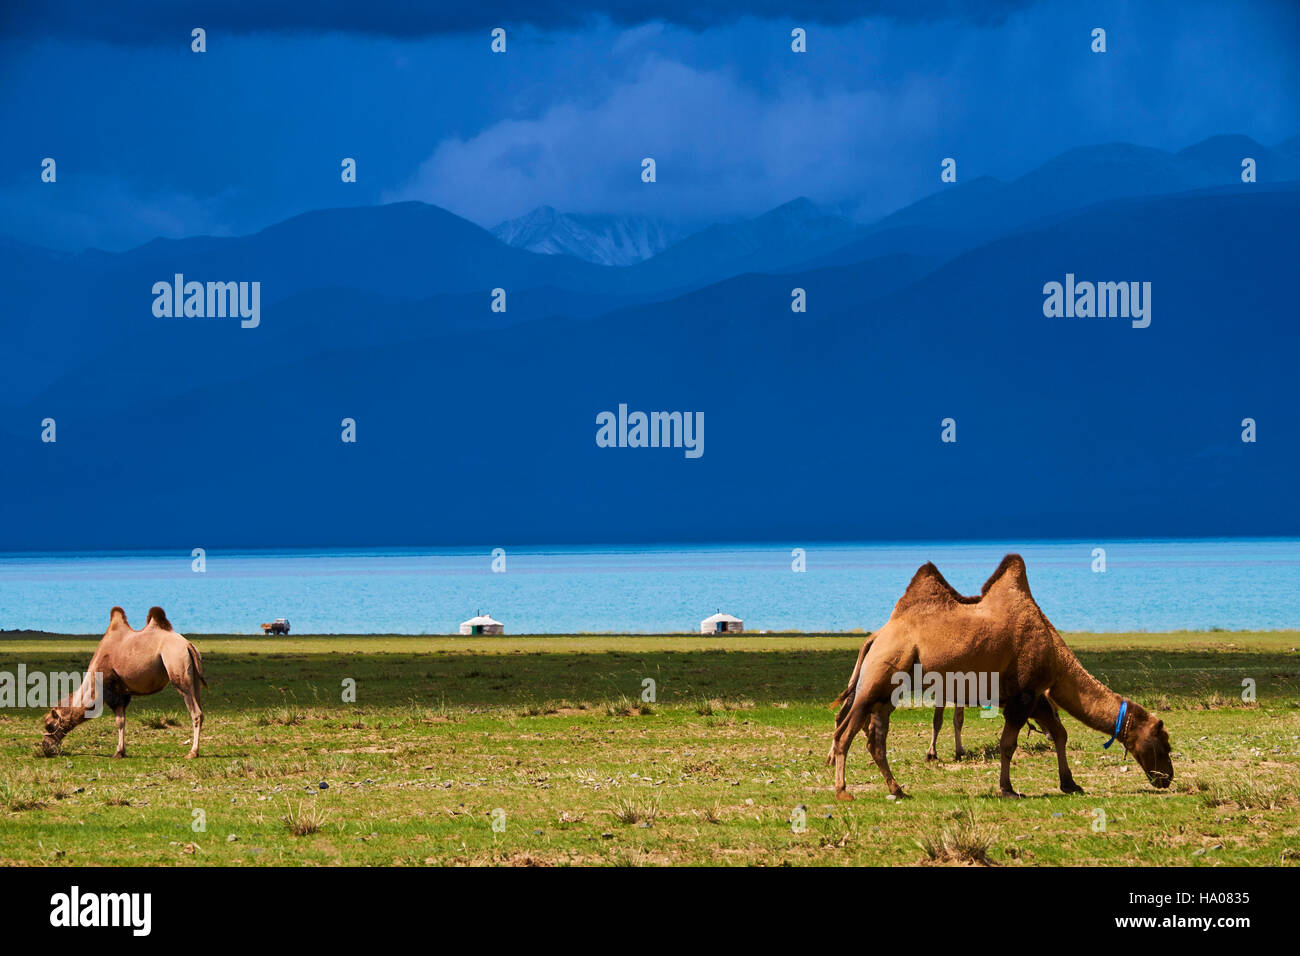 Mongolia, Uvs province, western Mongolia, camel herd at the lake Uureg Nuur - Stock Image